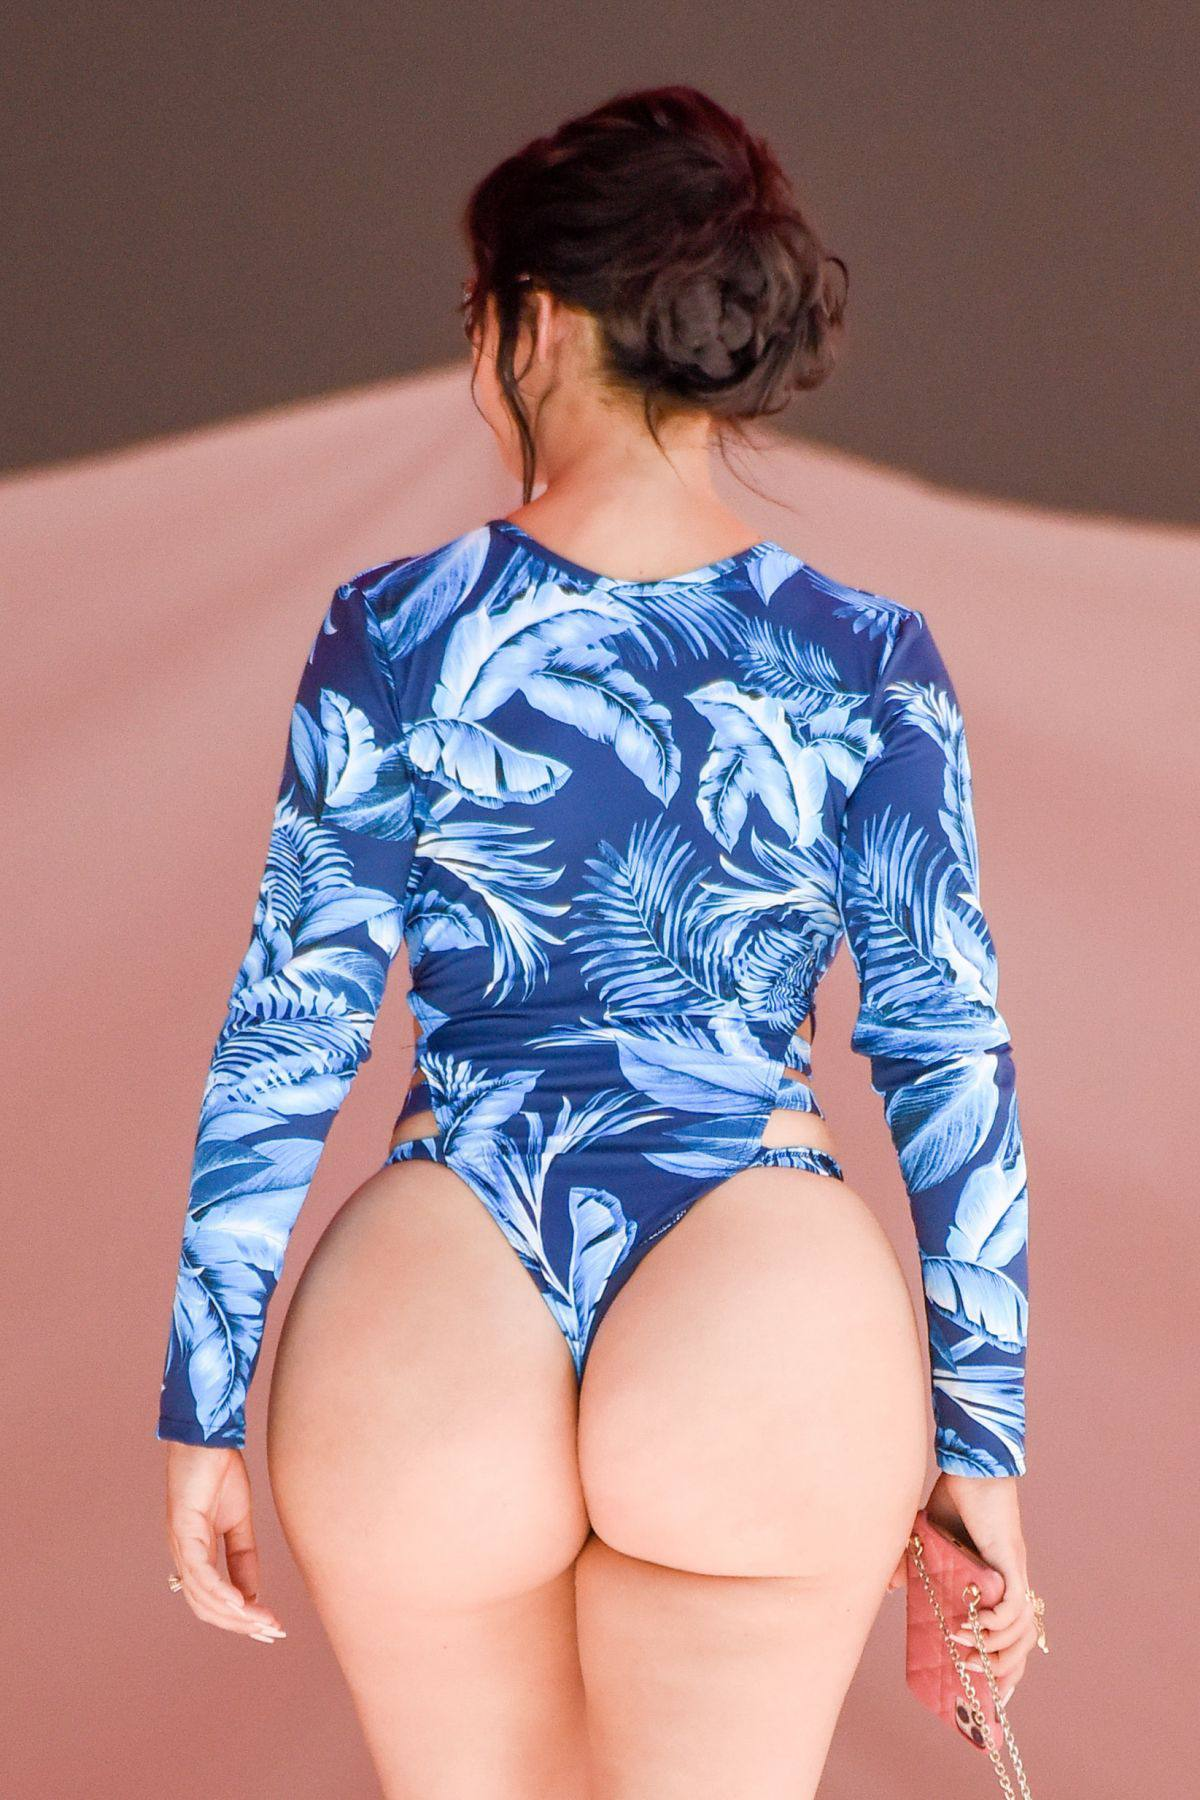 Demi Rose Mawby - Huge Sexy Ass in a Thong Swimsuit At a Pool in Spain